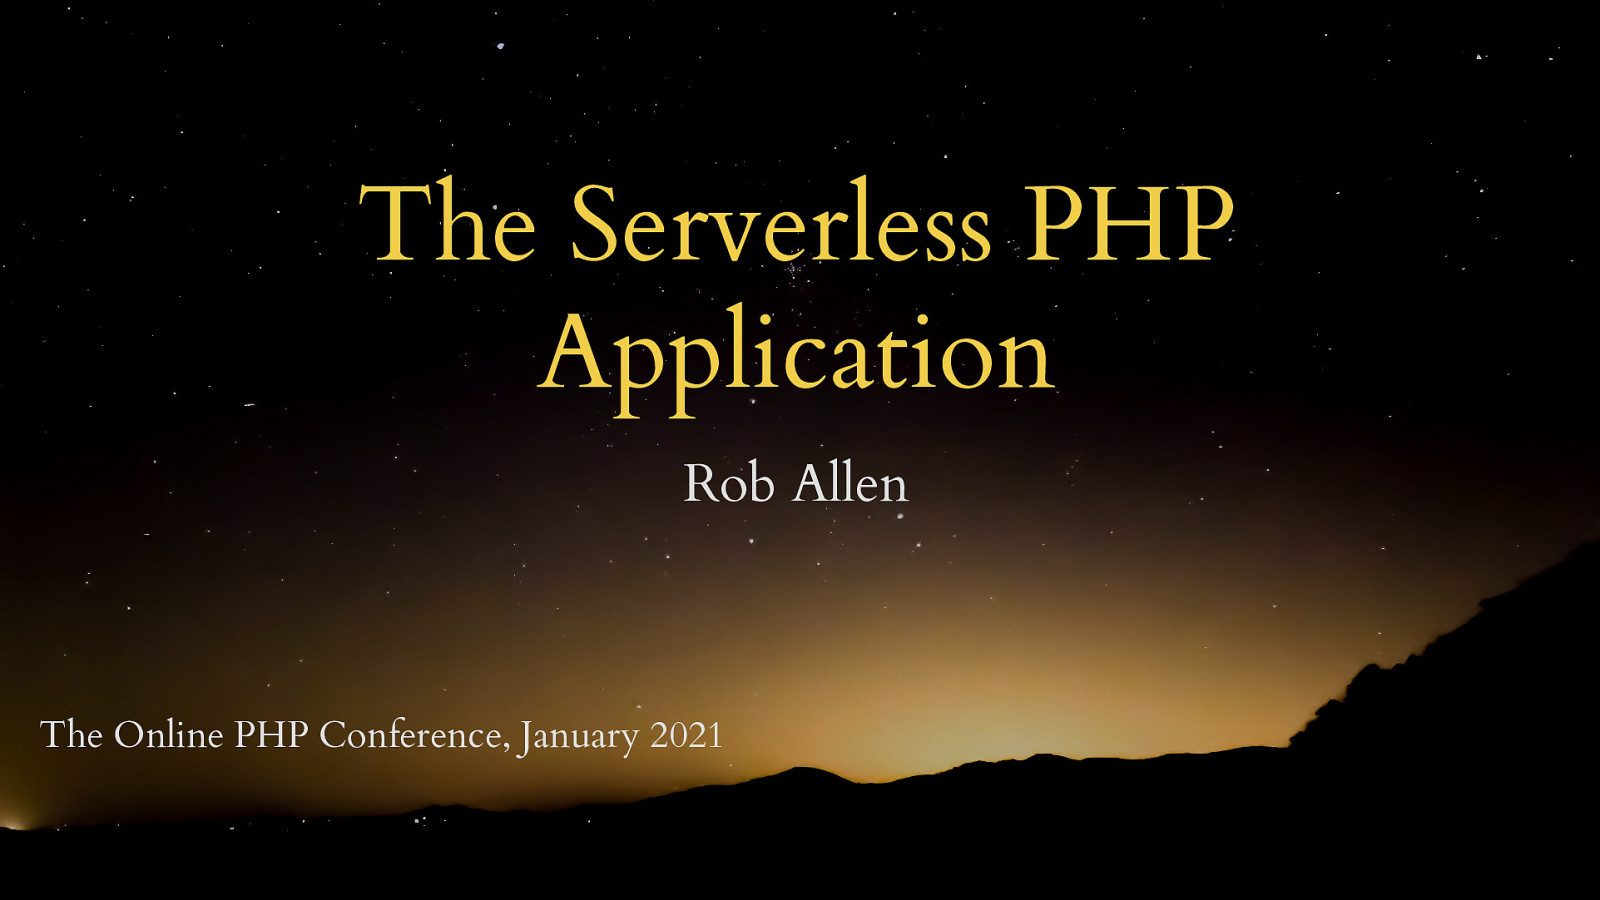 The Serverless PHP Application by Rob Allen